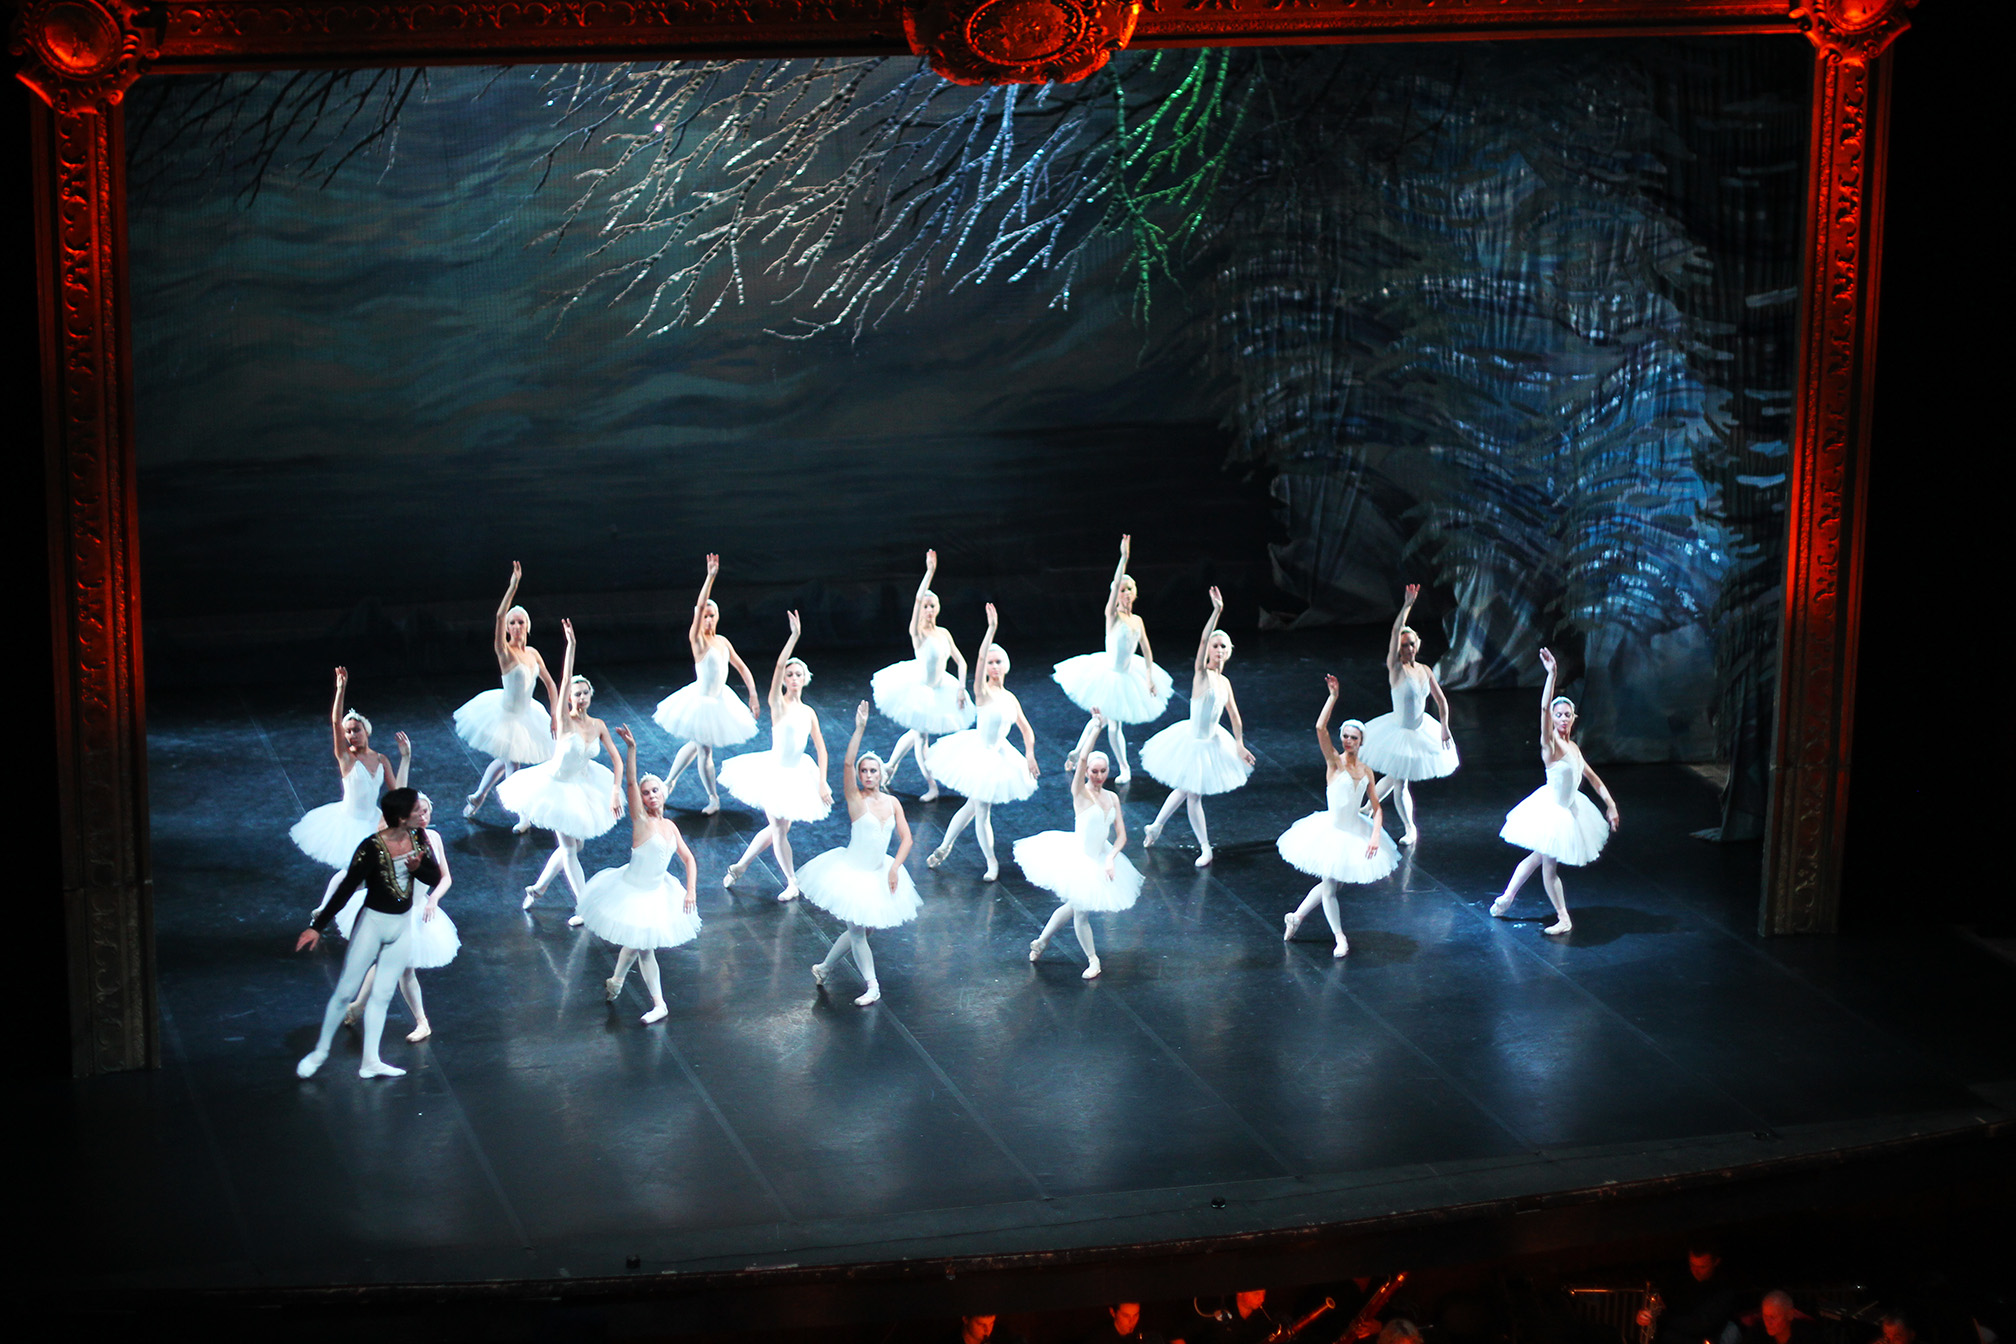 Swan Lake at the ballet in St Petersburg